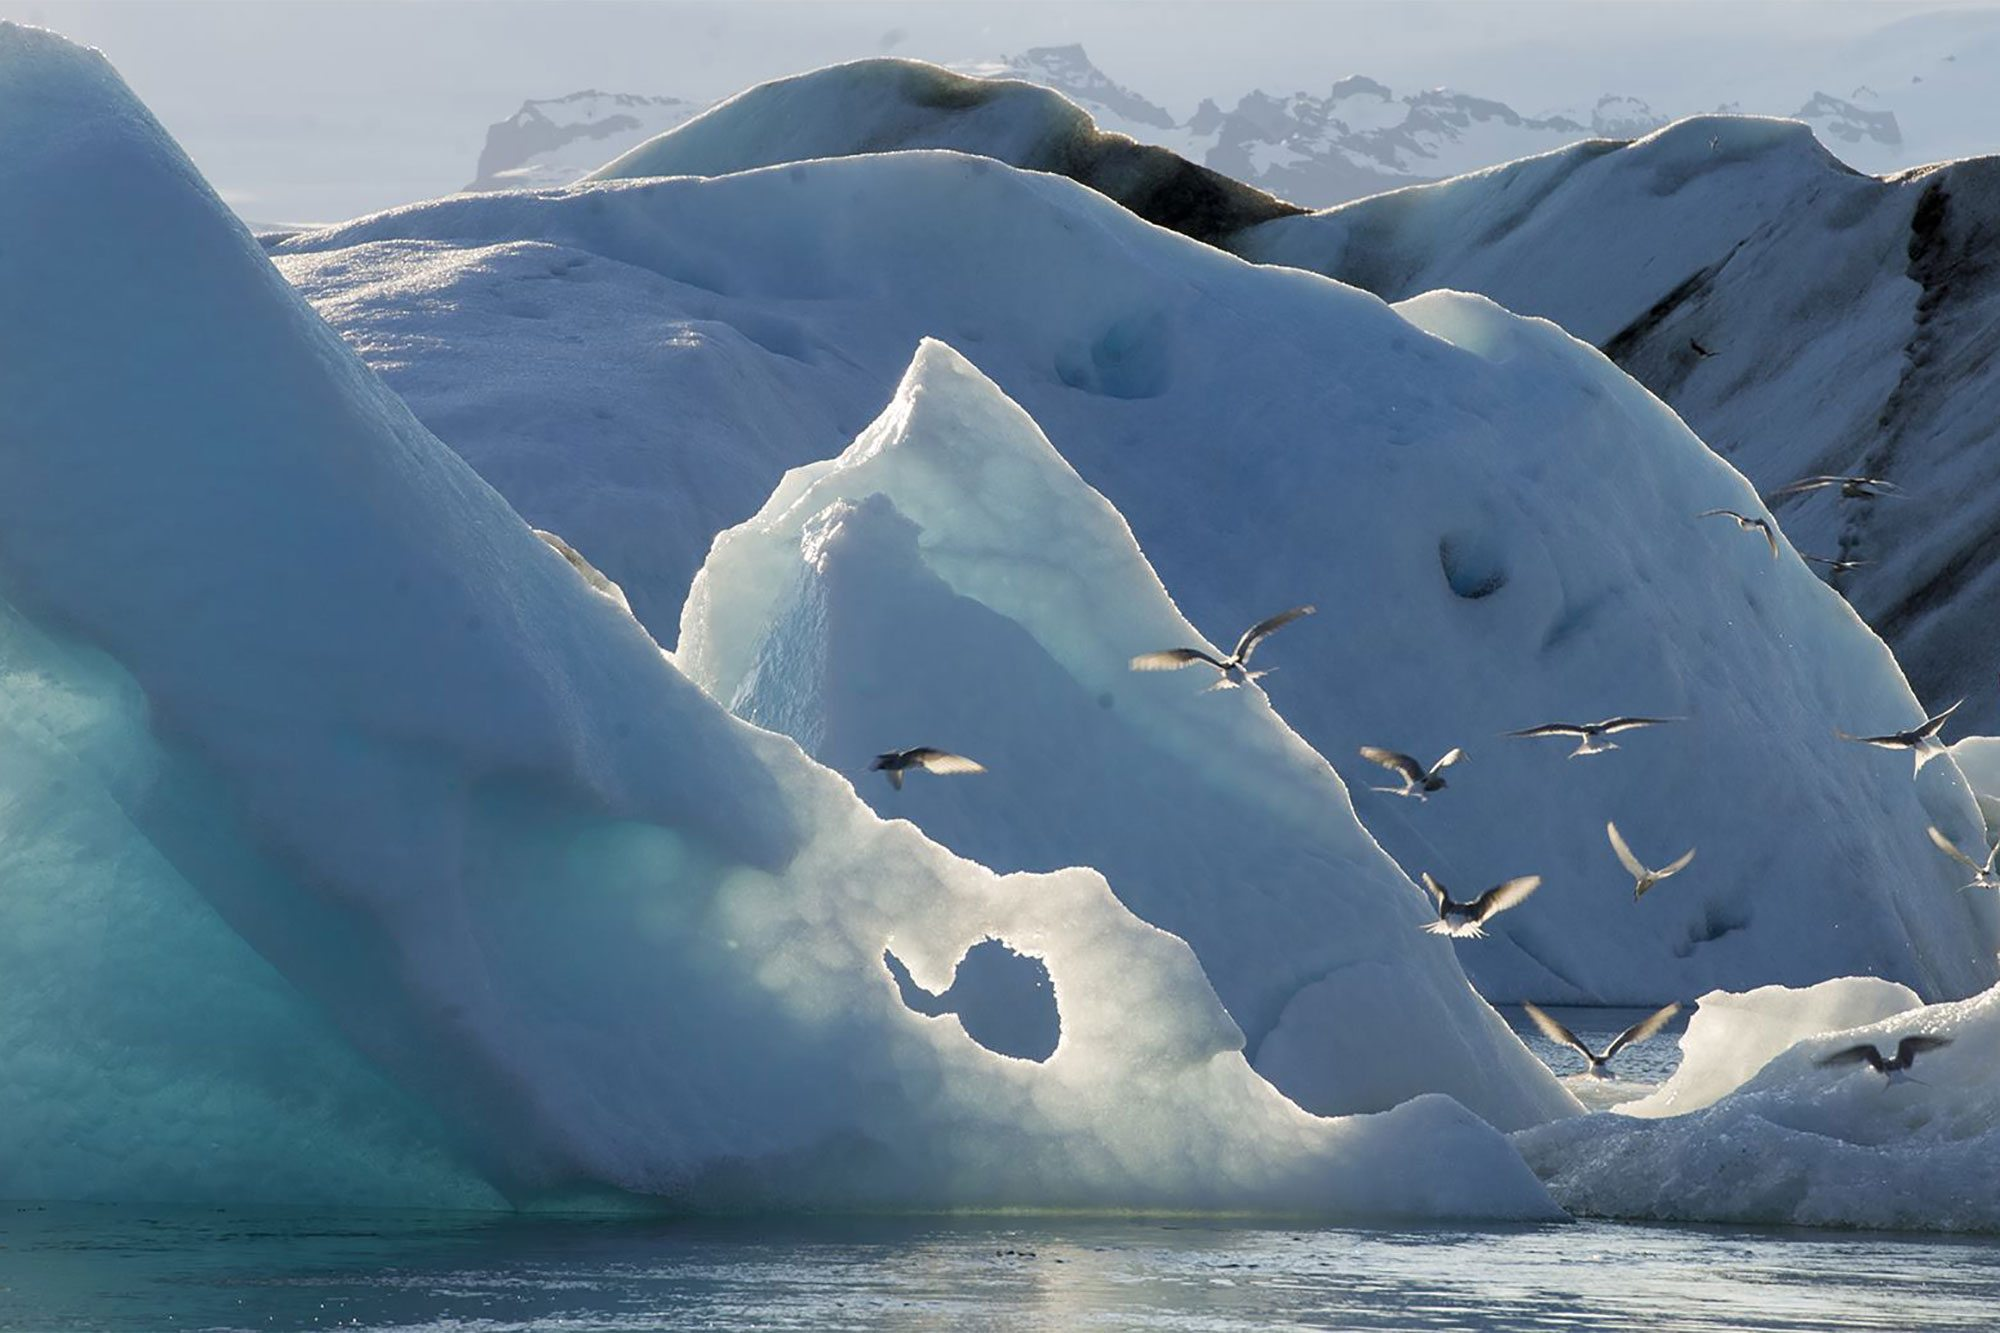 Masses of ice on Jökulsárlón glacial lagoon in south-east Iceland in June 2013. UN Photo/Eskinder Debebe